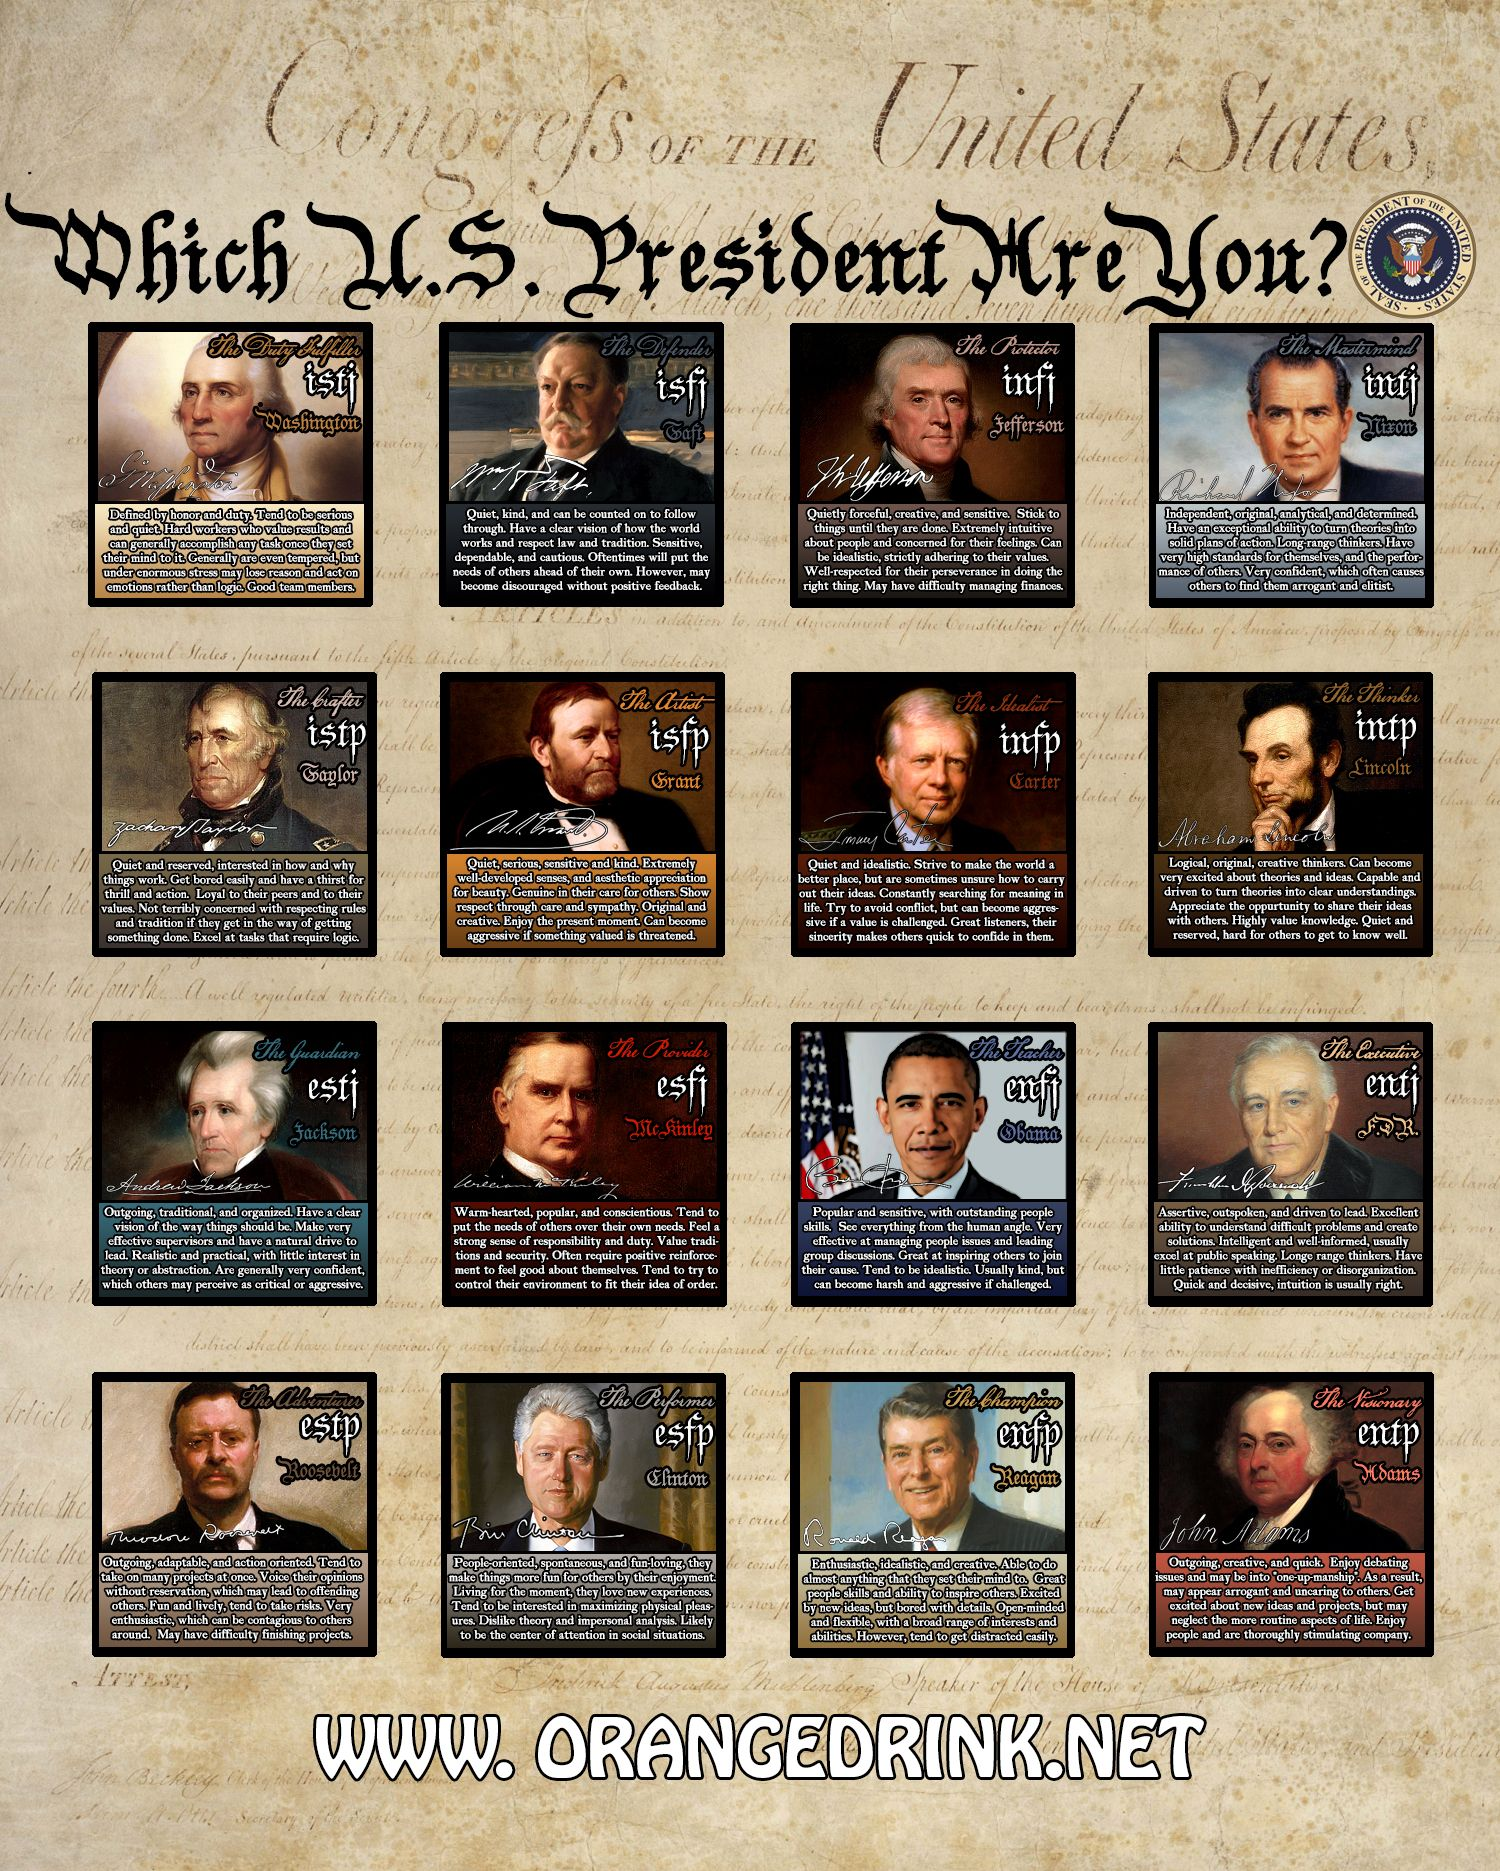 which us president made father's day an official holiday